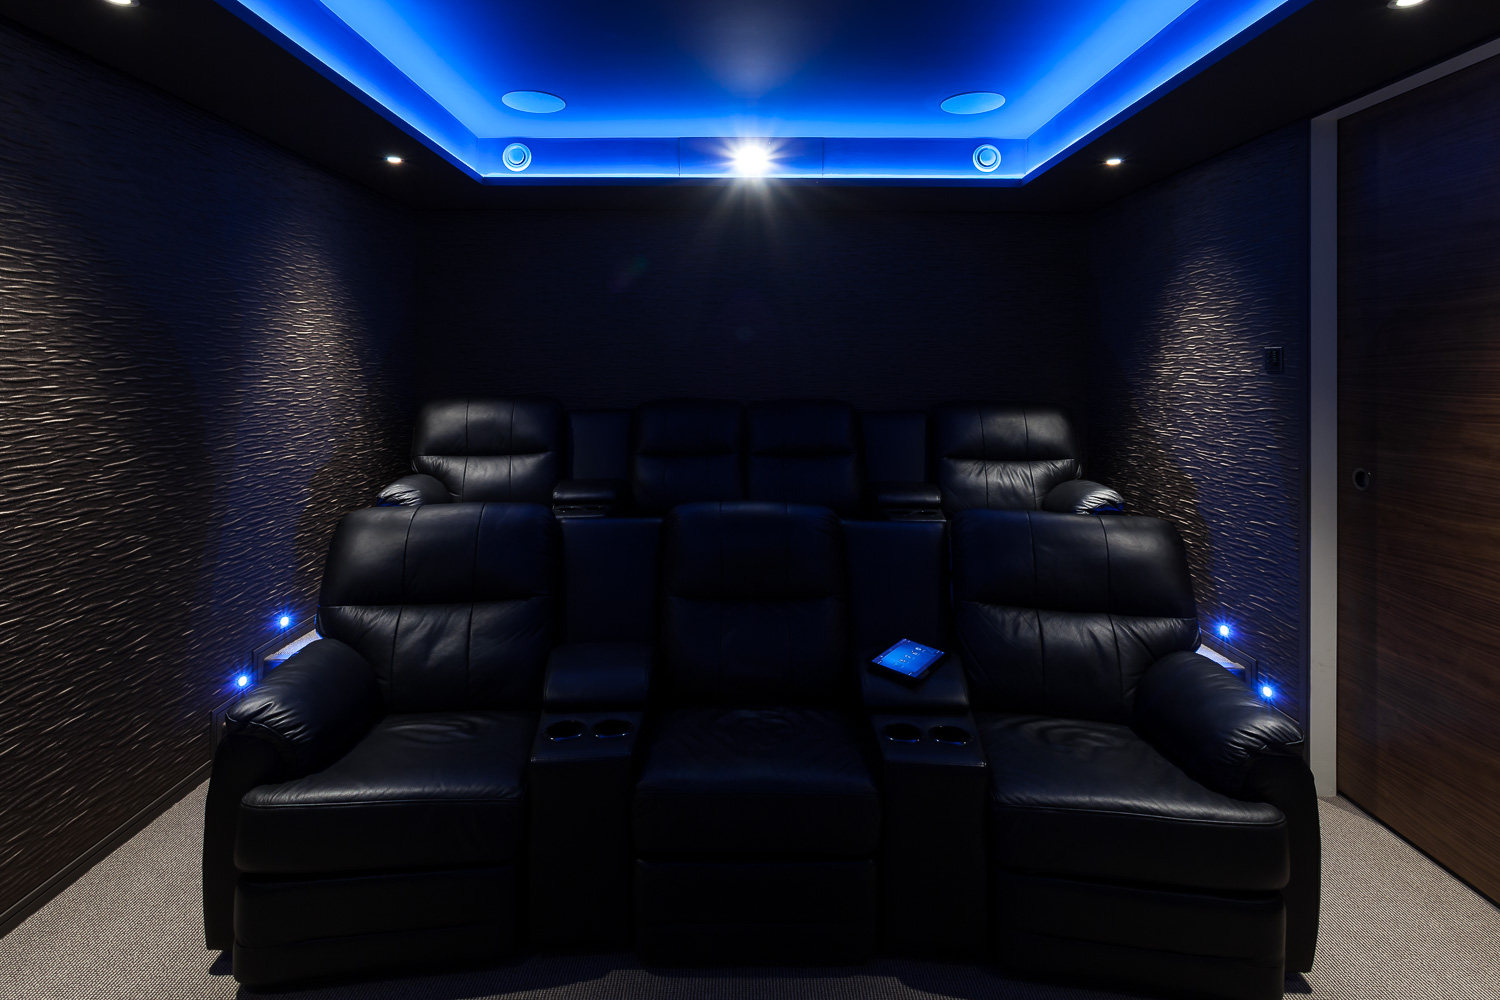 Basement Cinema - Seating and Projector